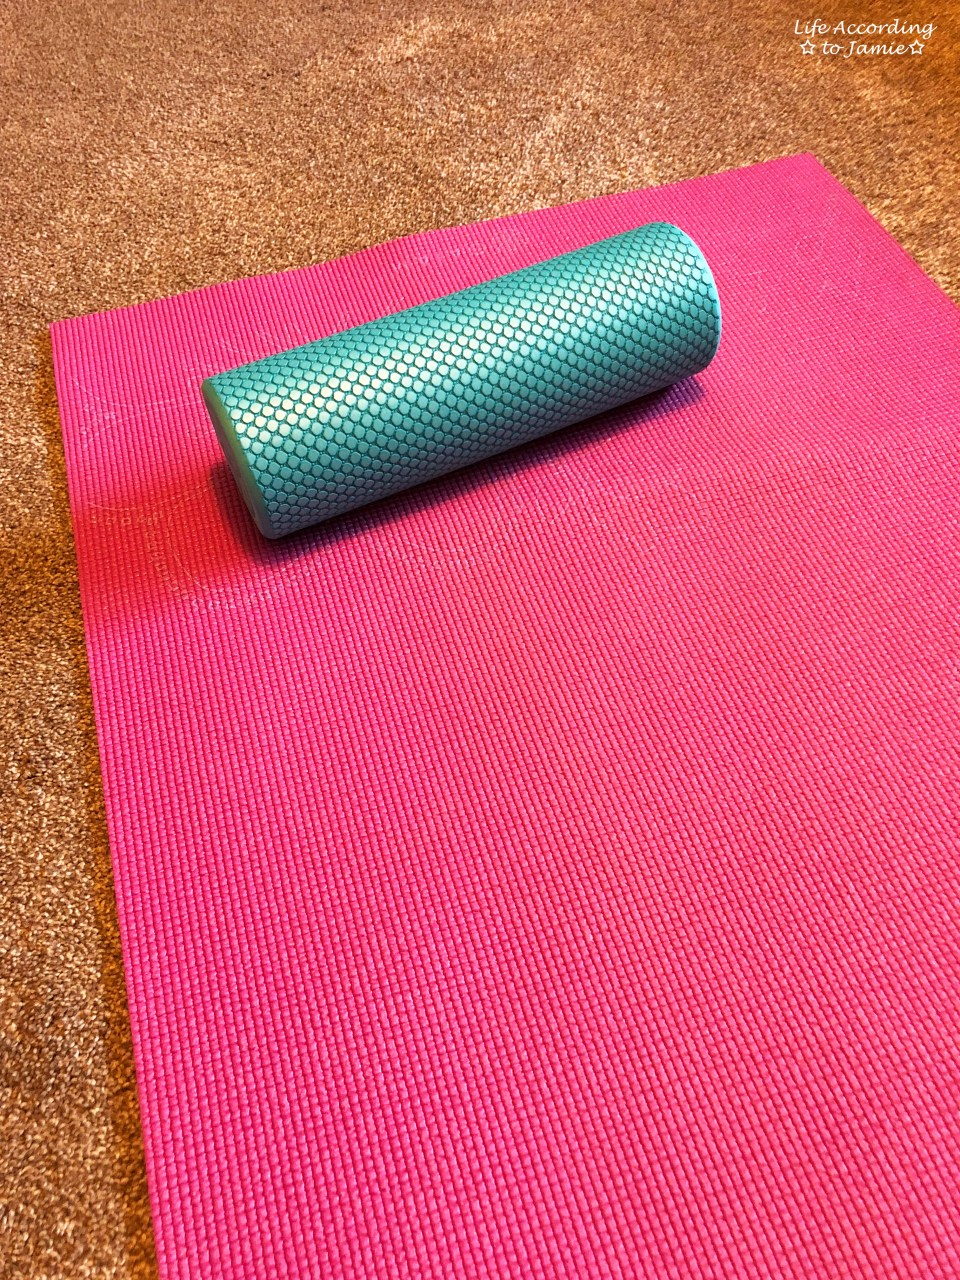 BBG Beginner - Foam Roller